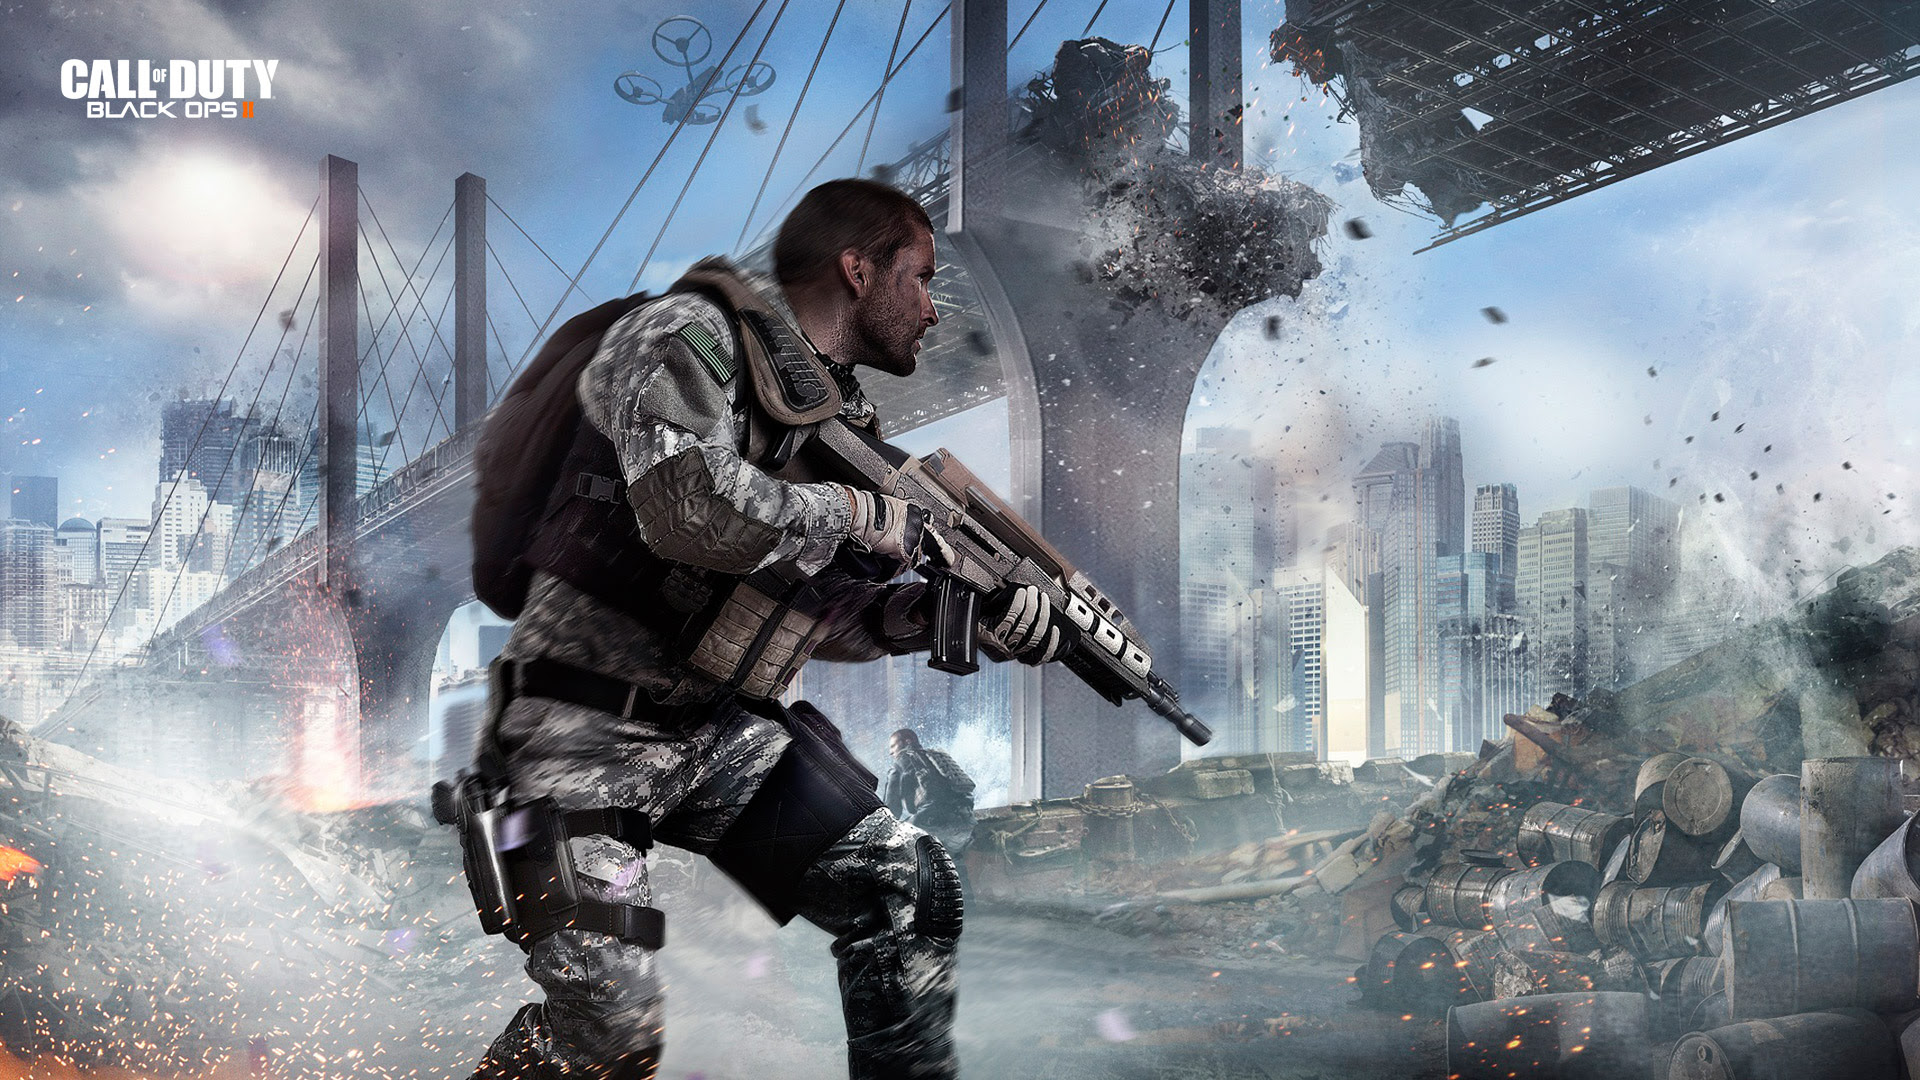 Call Of Duty Black Ops 2 Wallpaper 1